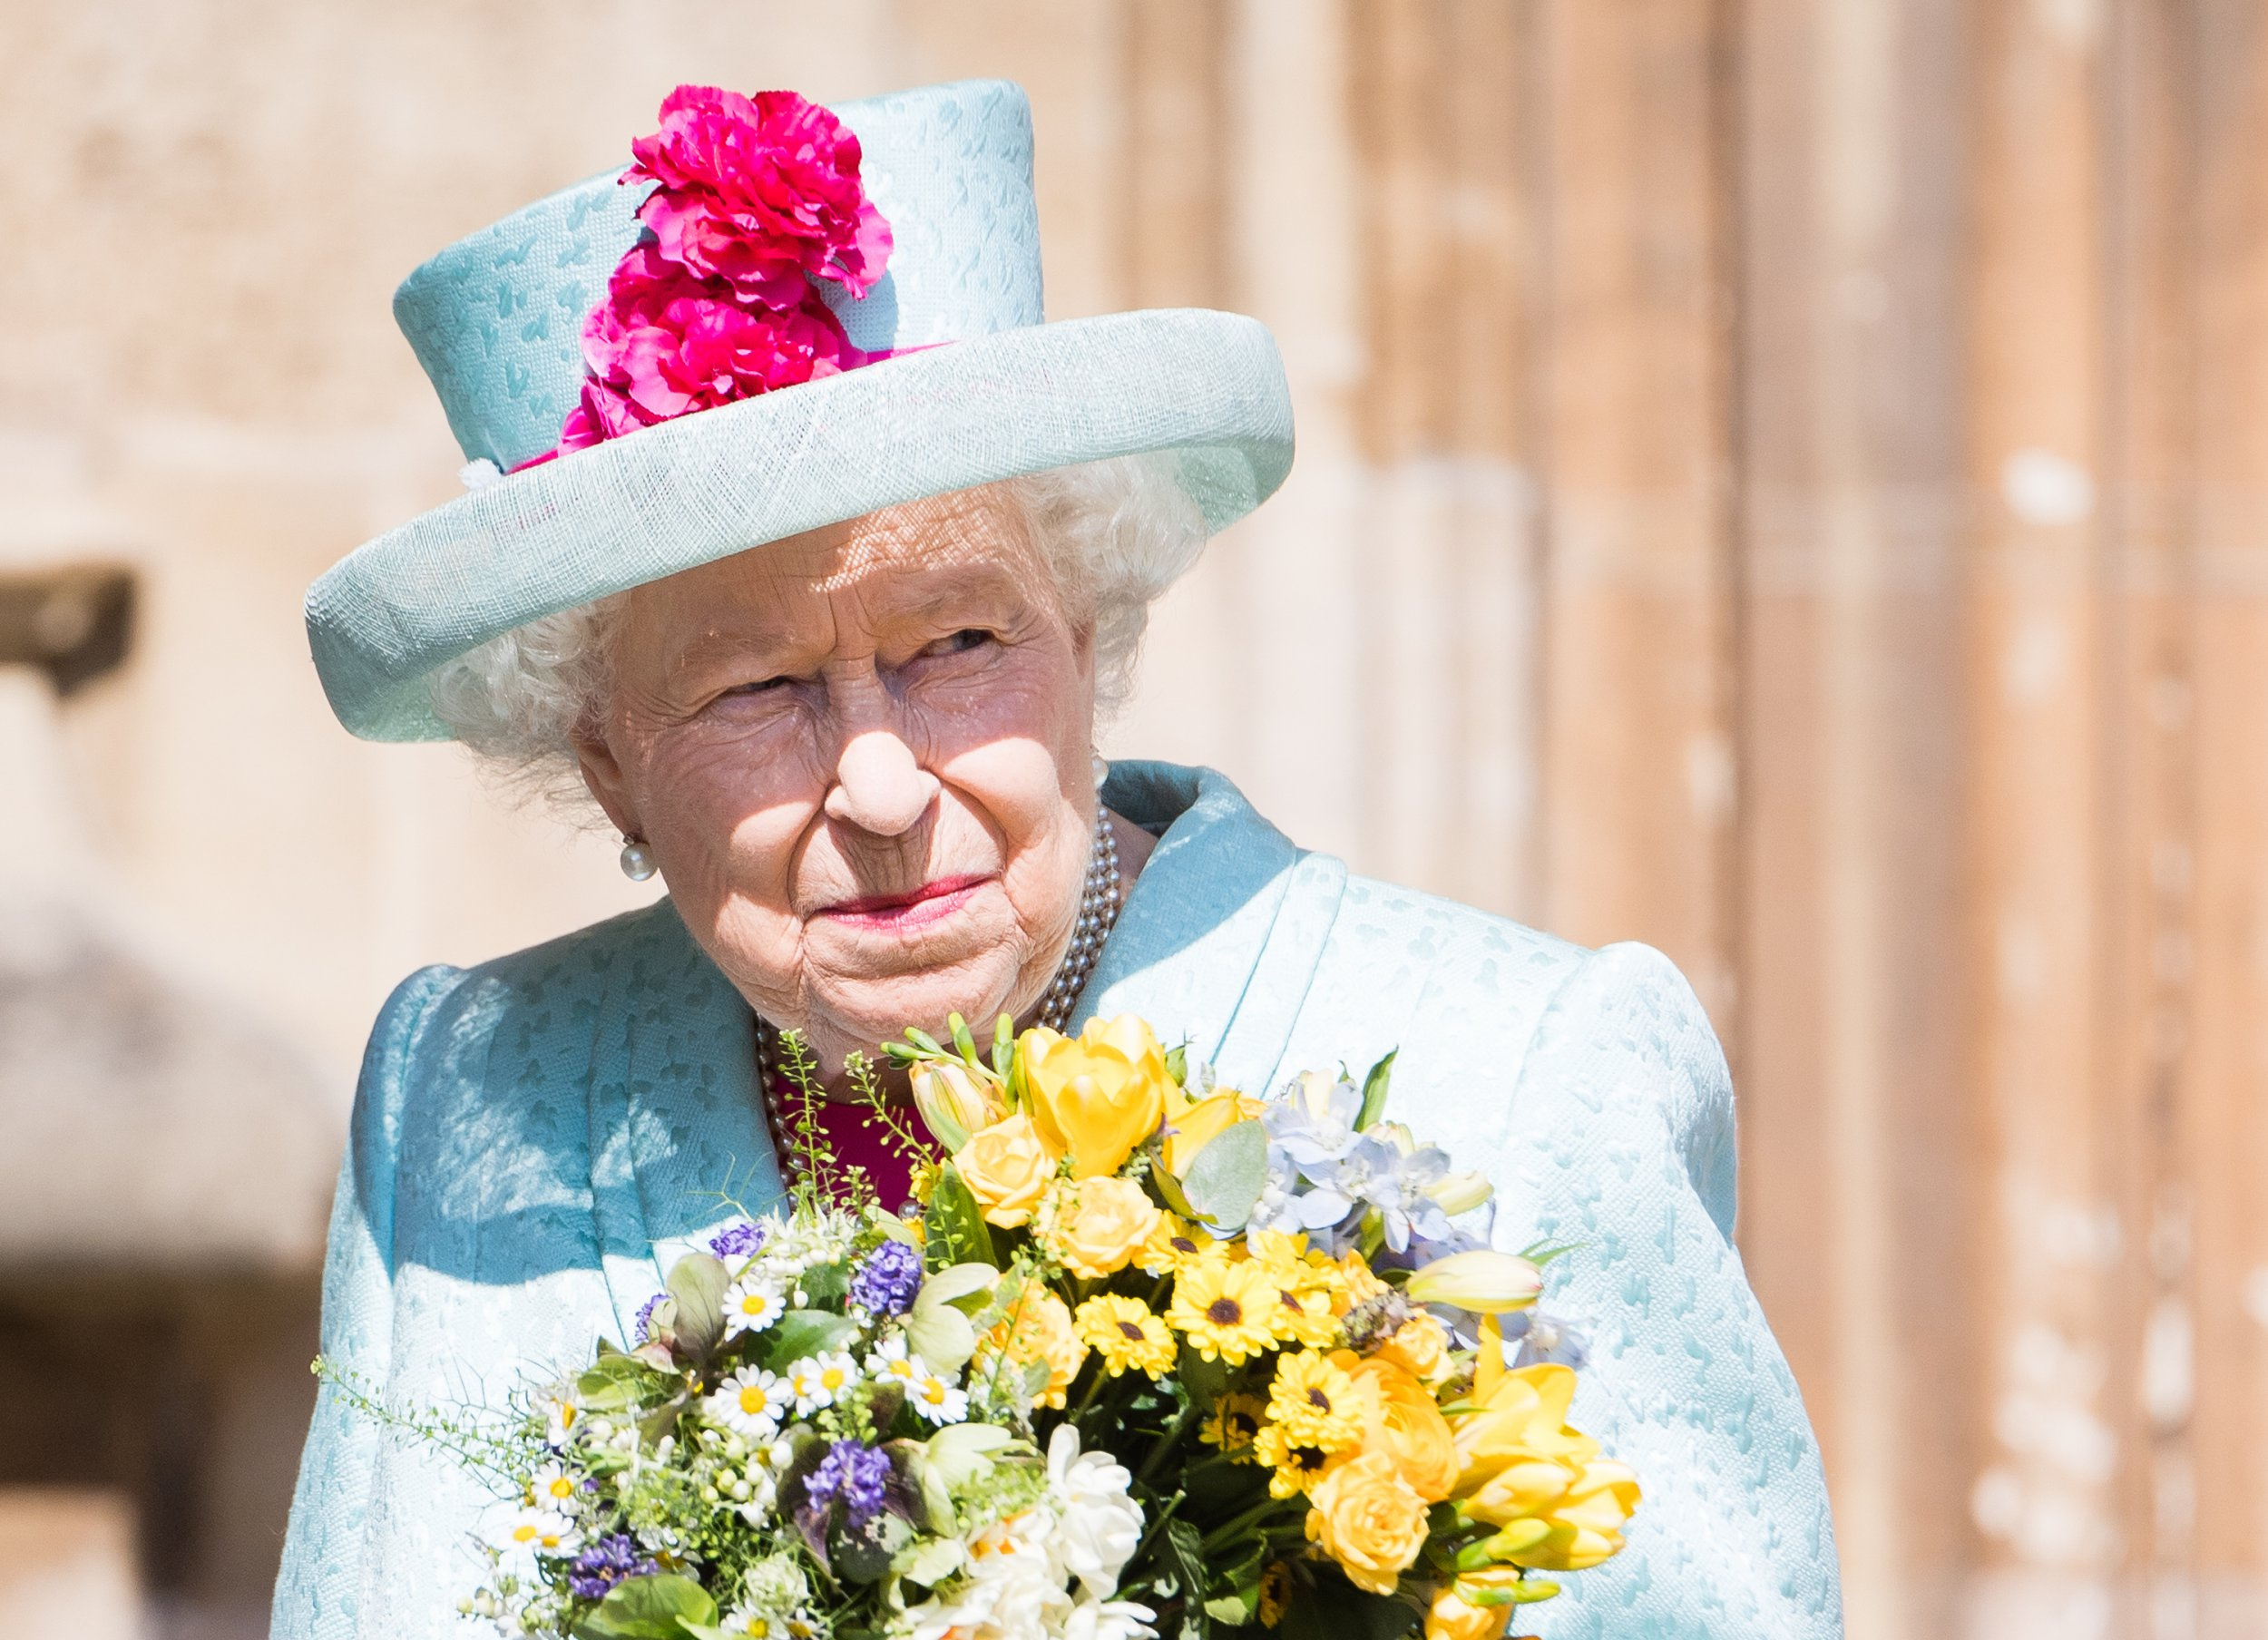 WINDSOR, ENGLAND - APRIL 21: Queen Elizabeth II attends Easter Sunday service at St George's Chapel on April 21, 2019 in Windsor, England. (Photo by Samir Hussein/Samir Hussein/WireImage)